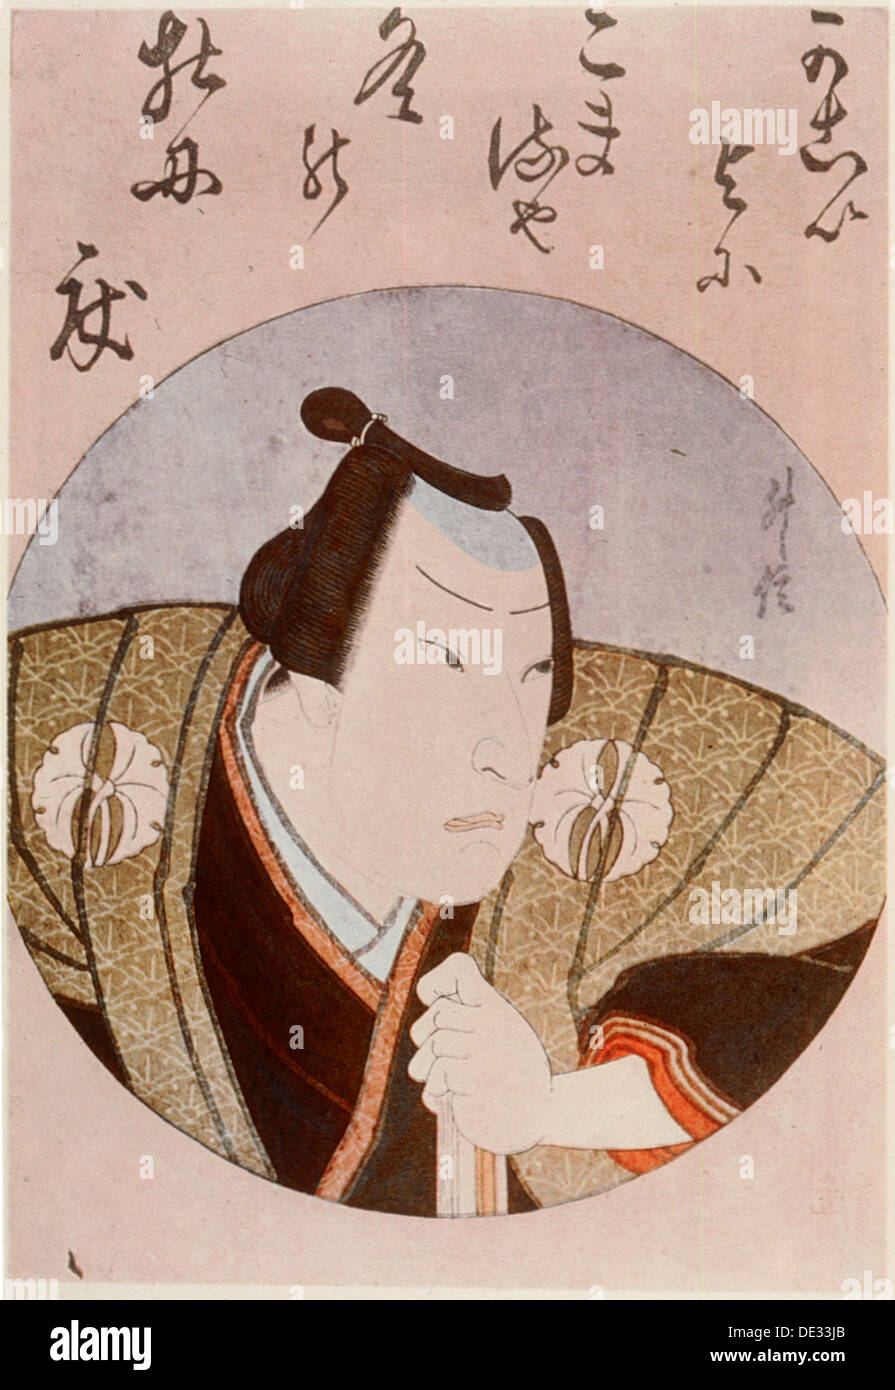 Osaka woodcut portraying an actor of the Kabuki theatre playing an unknown role. - Stock Image